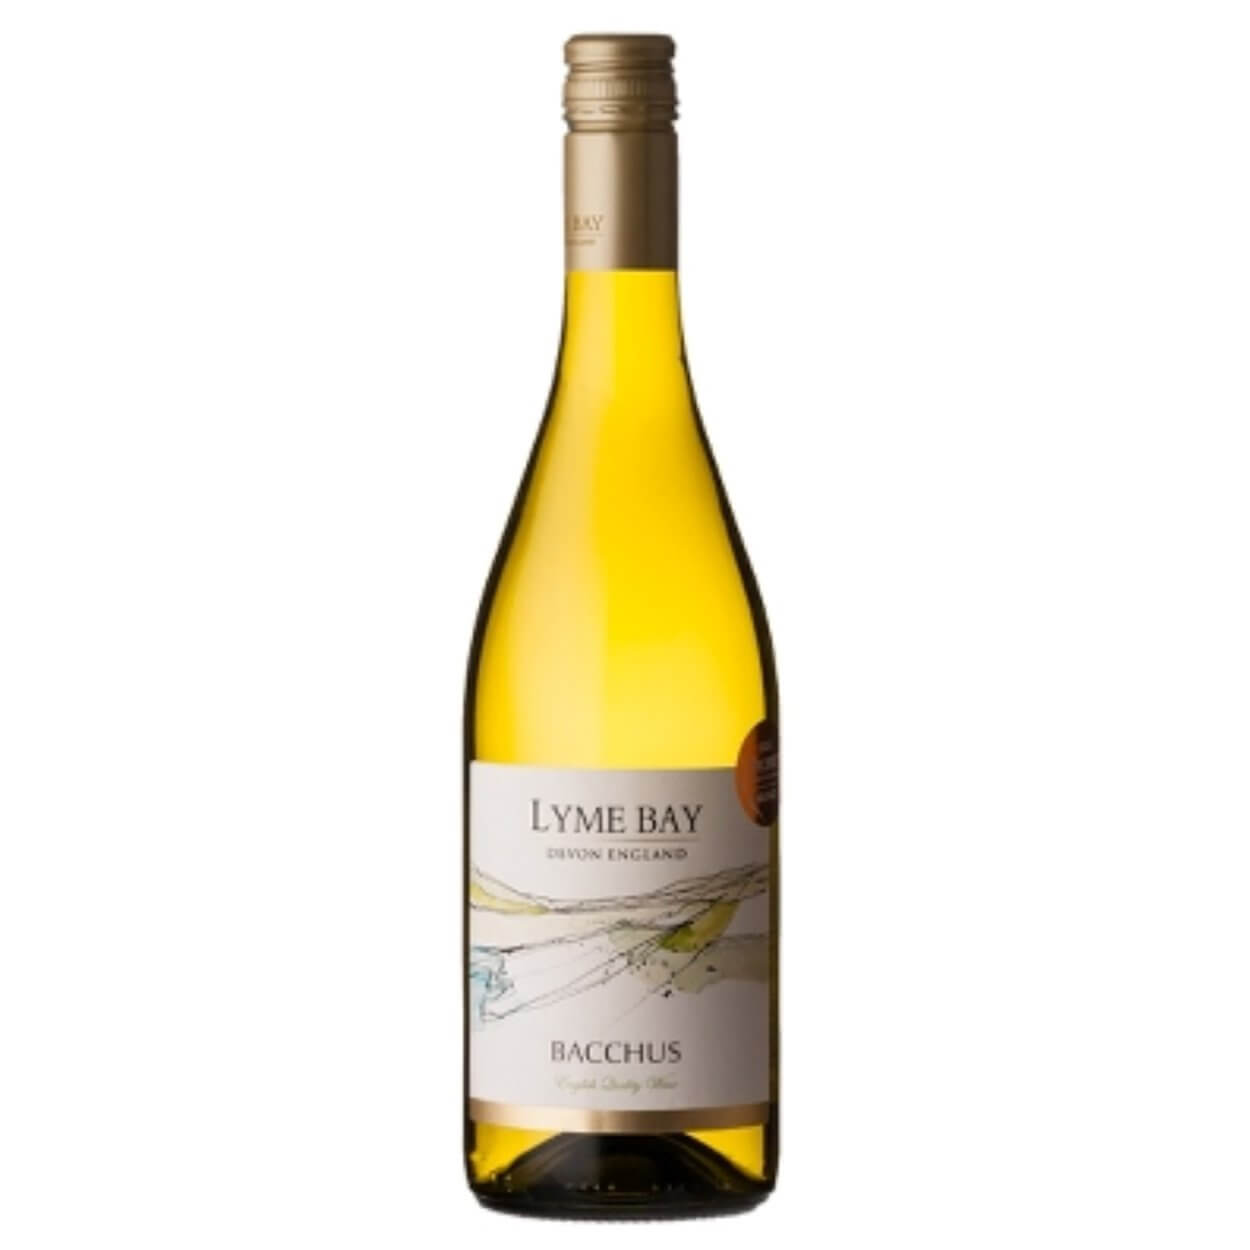 Lyme Bay Sandbar Bacchus 2016 English White Wine